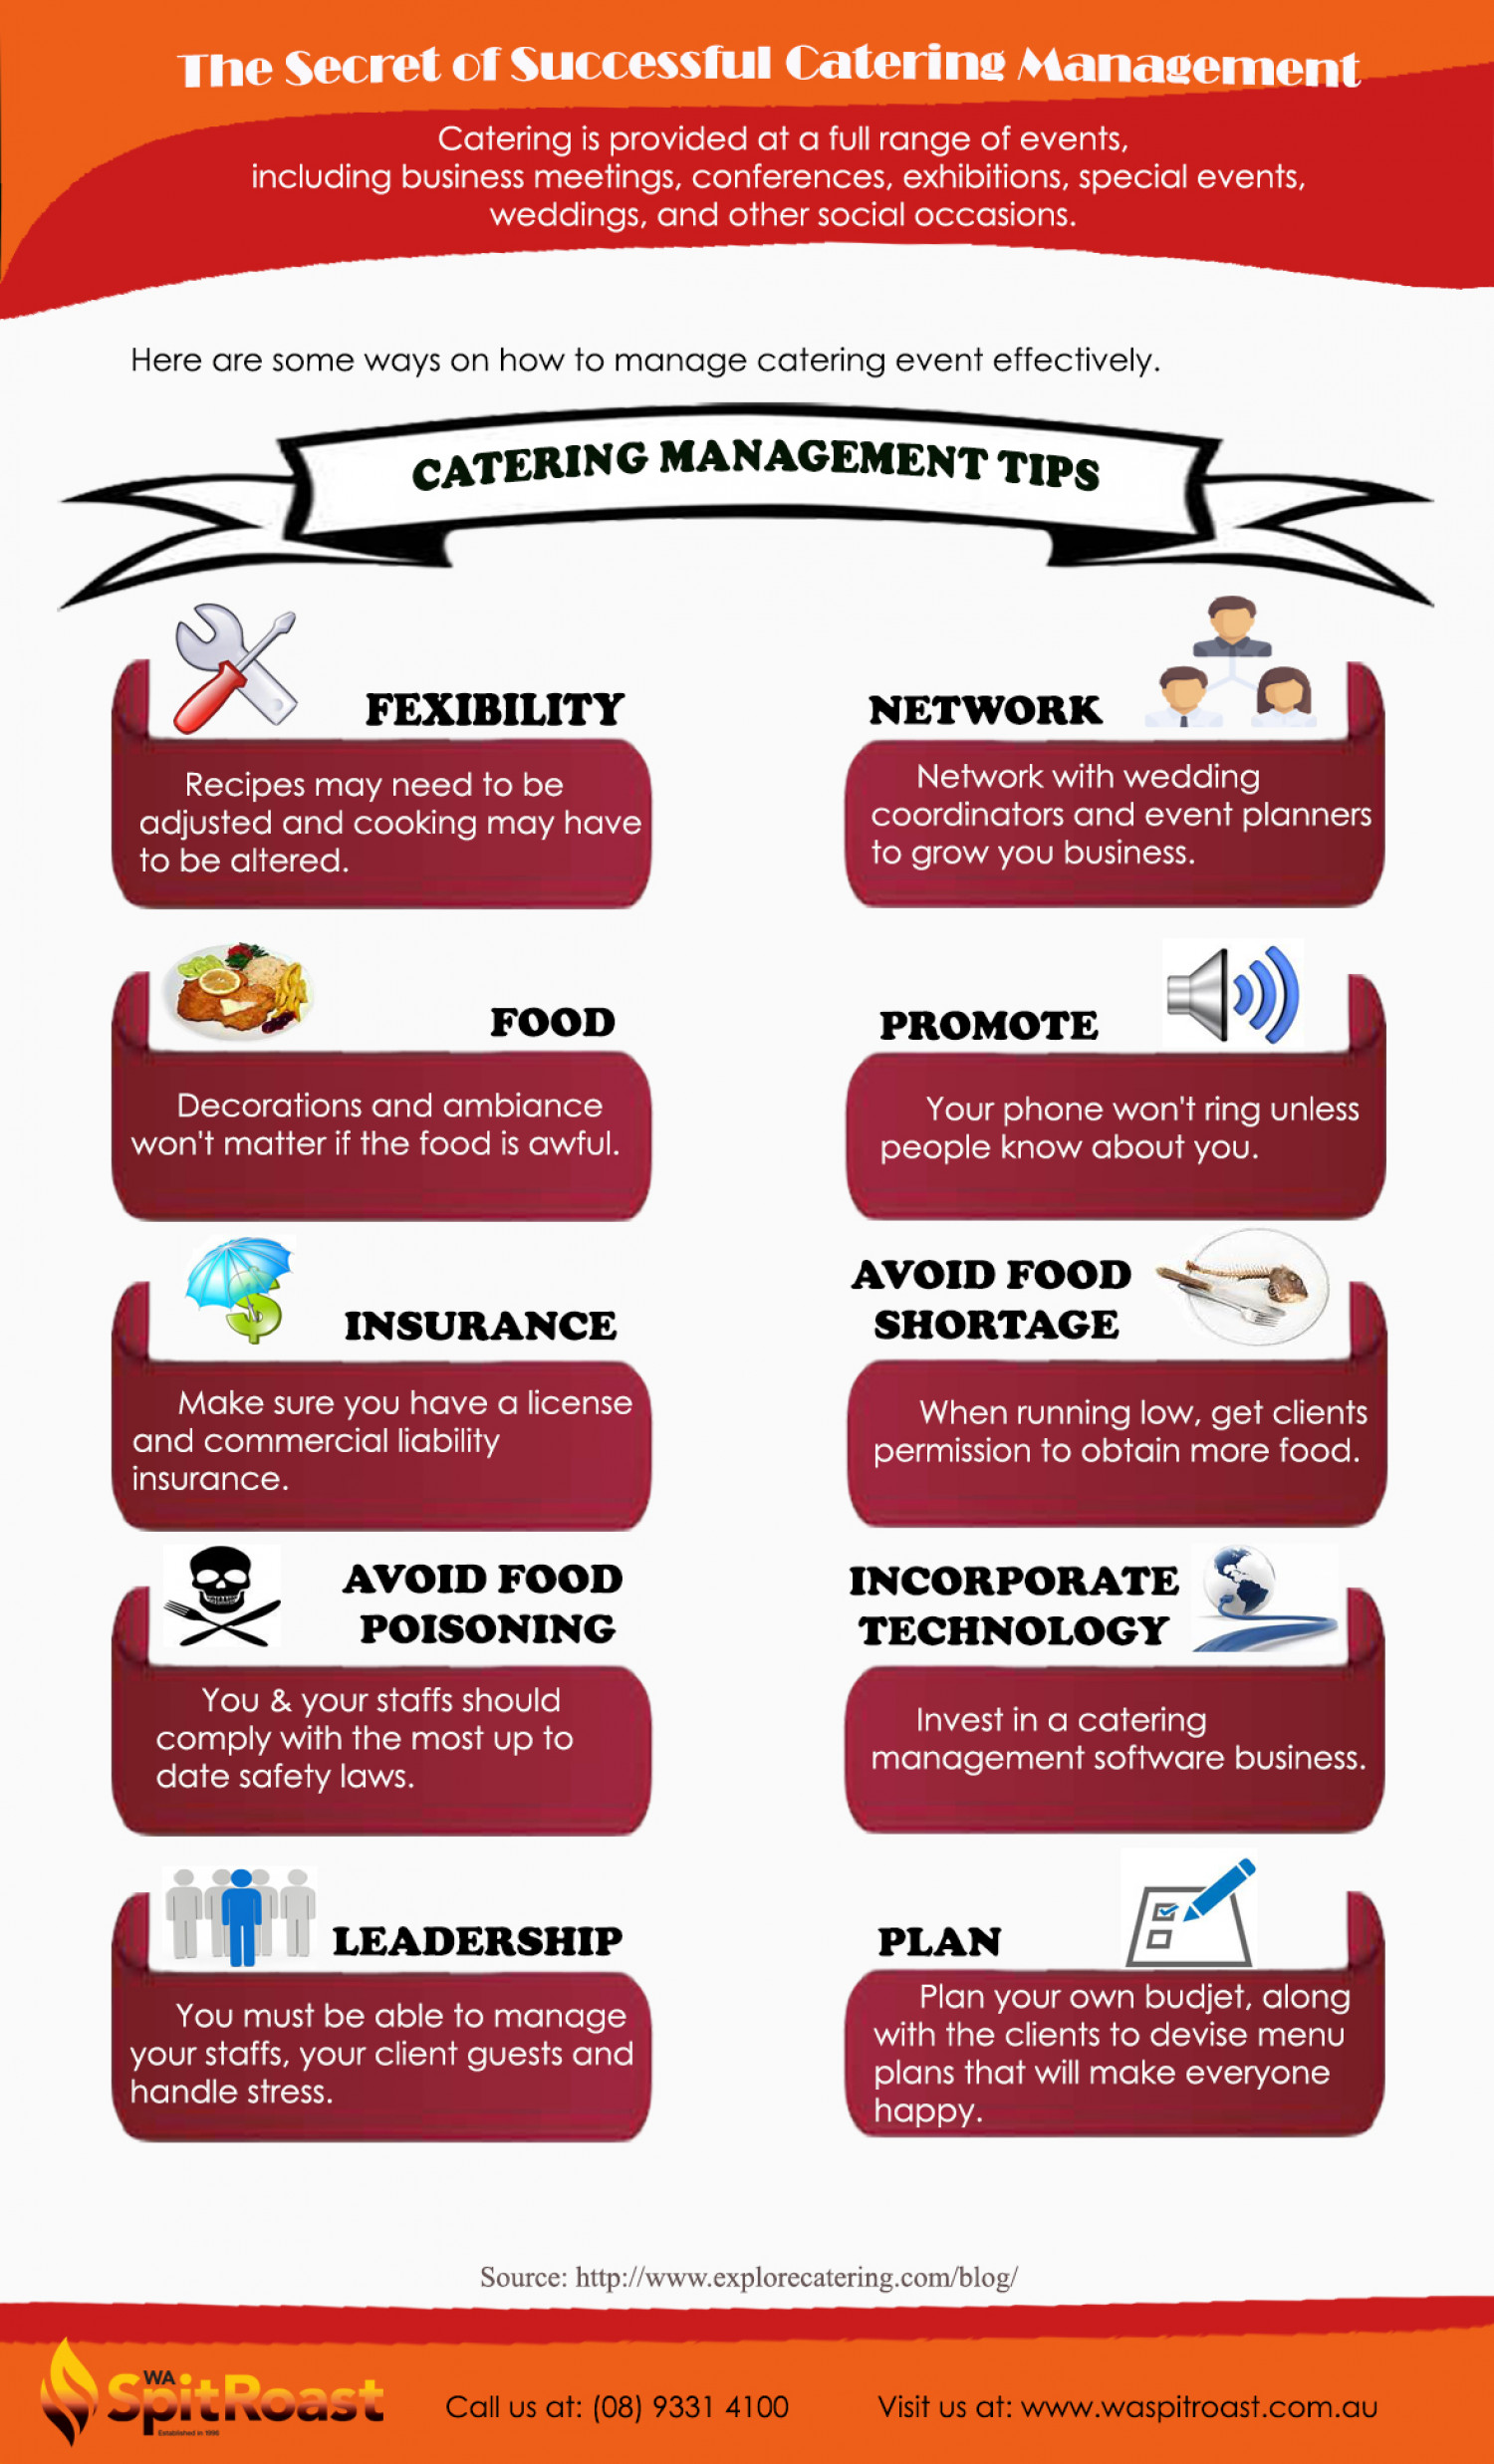 The Secret of Successful Catering Management Infographic